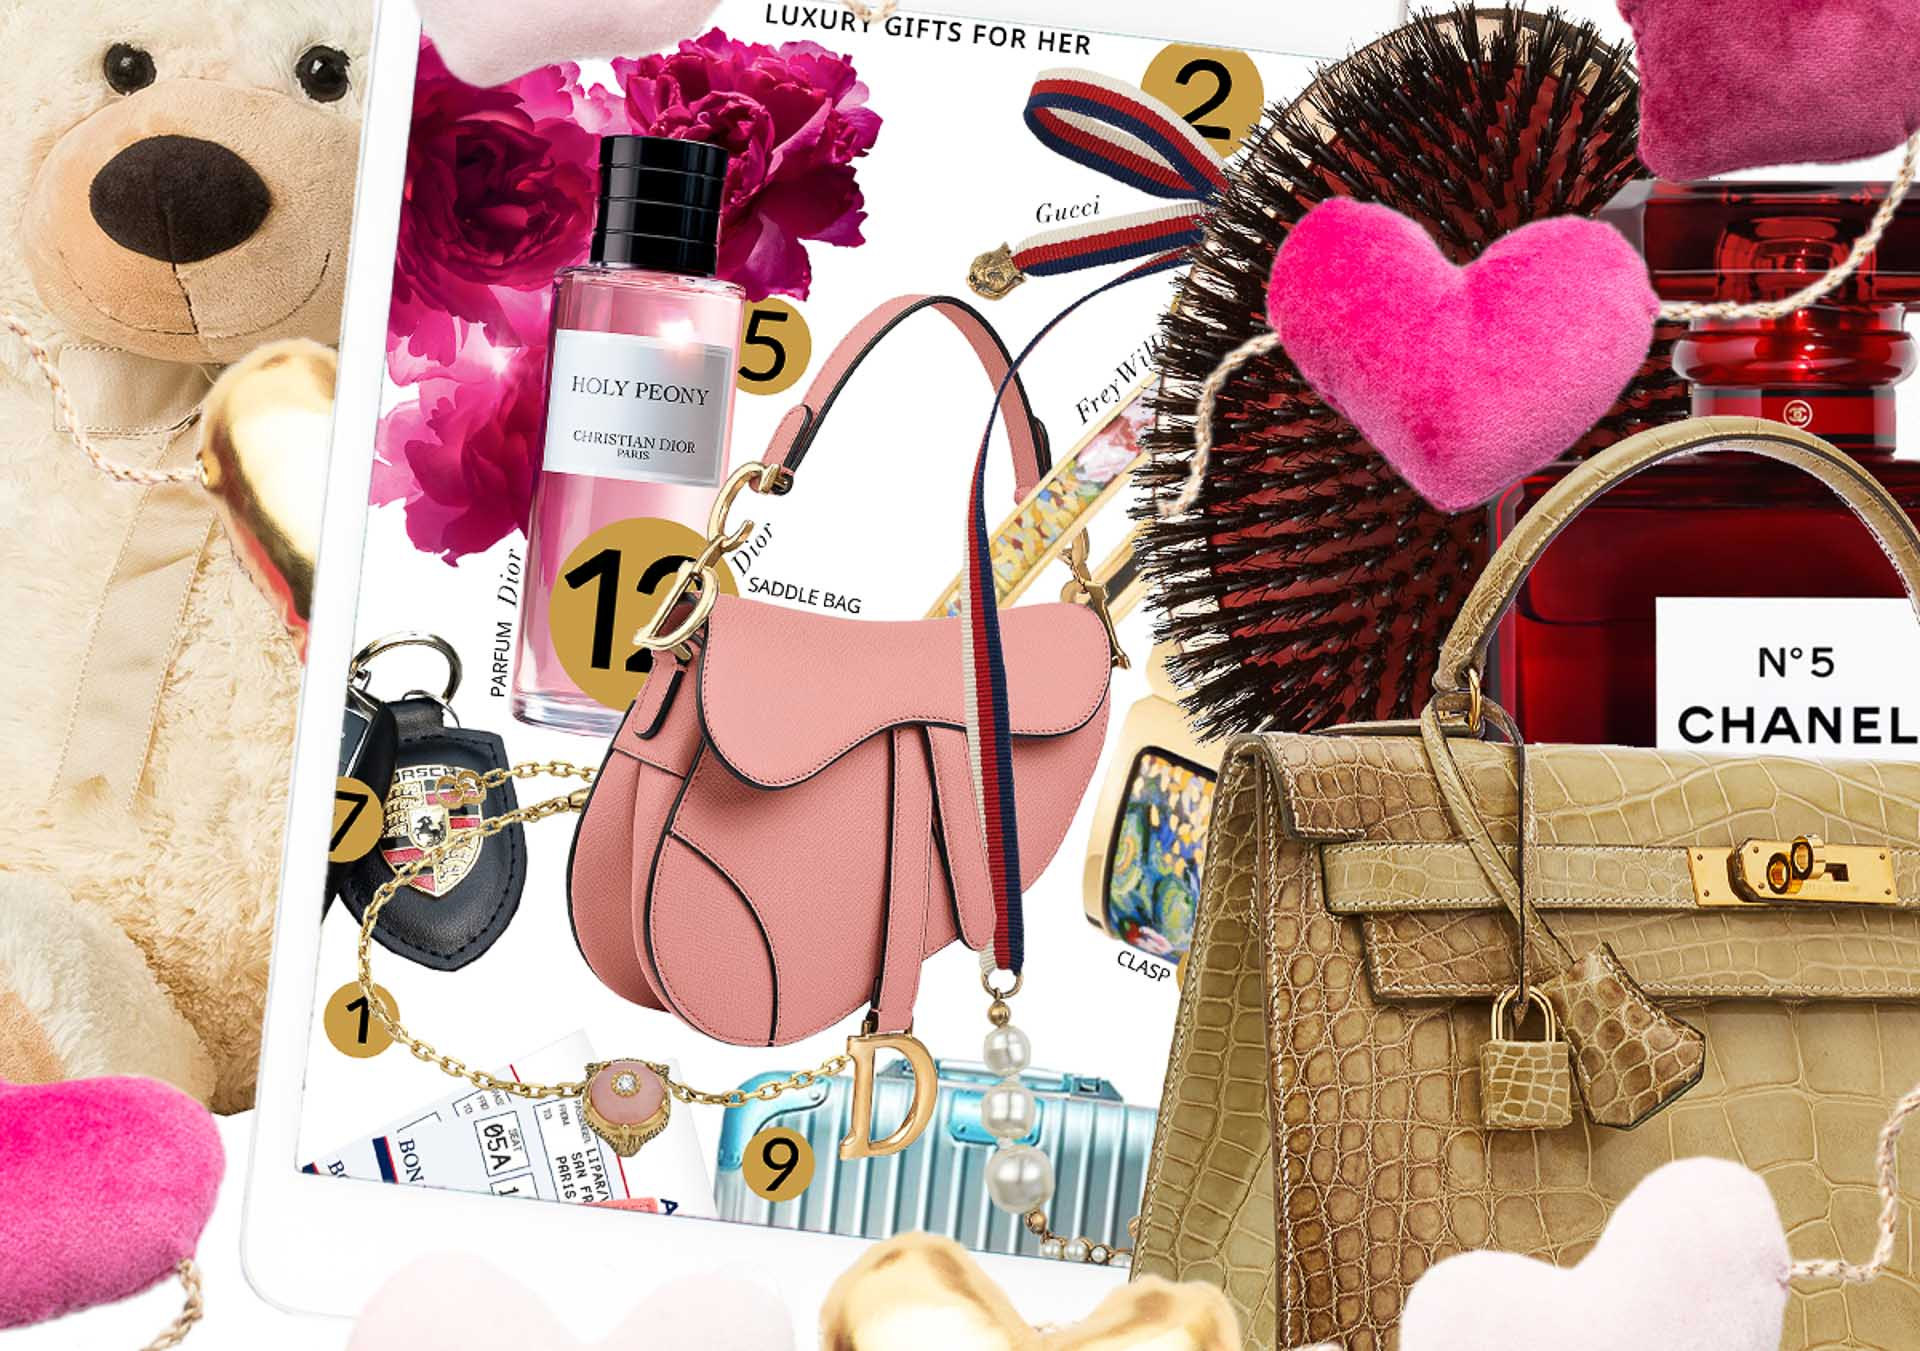 Brunette from Wall Street Luxury gifts for her hermes kelly bag dior saddle handbag teddy bear perfumes